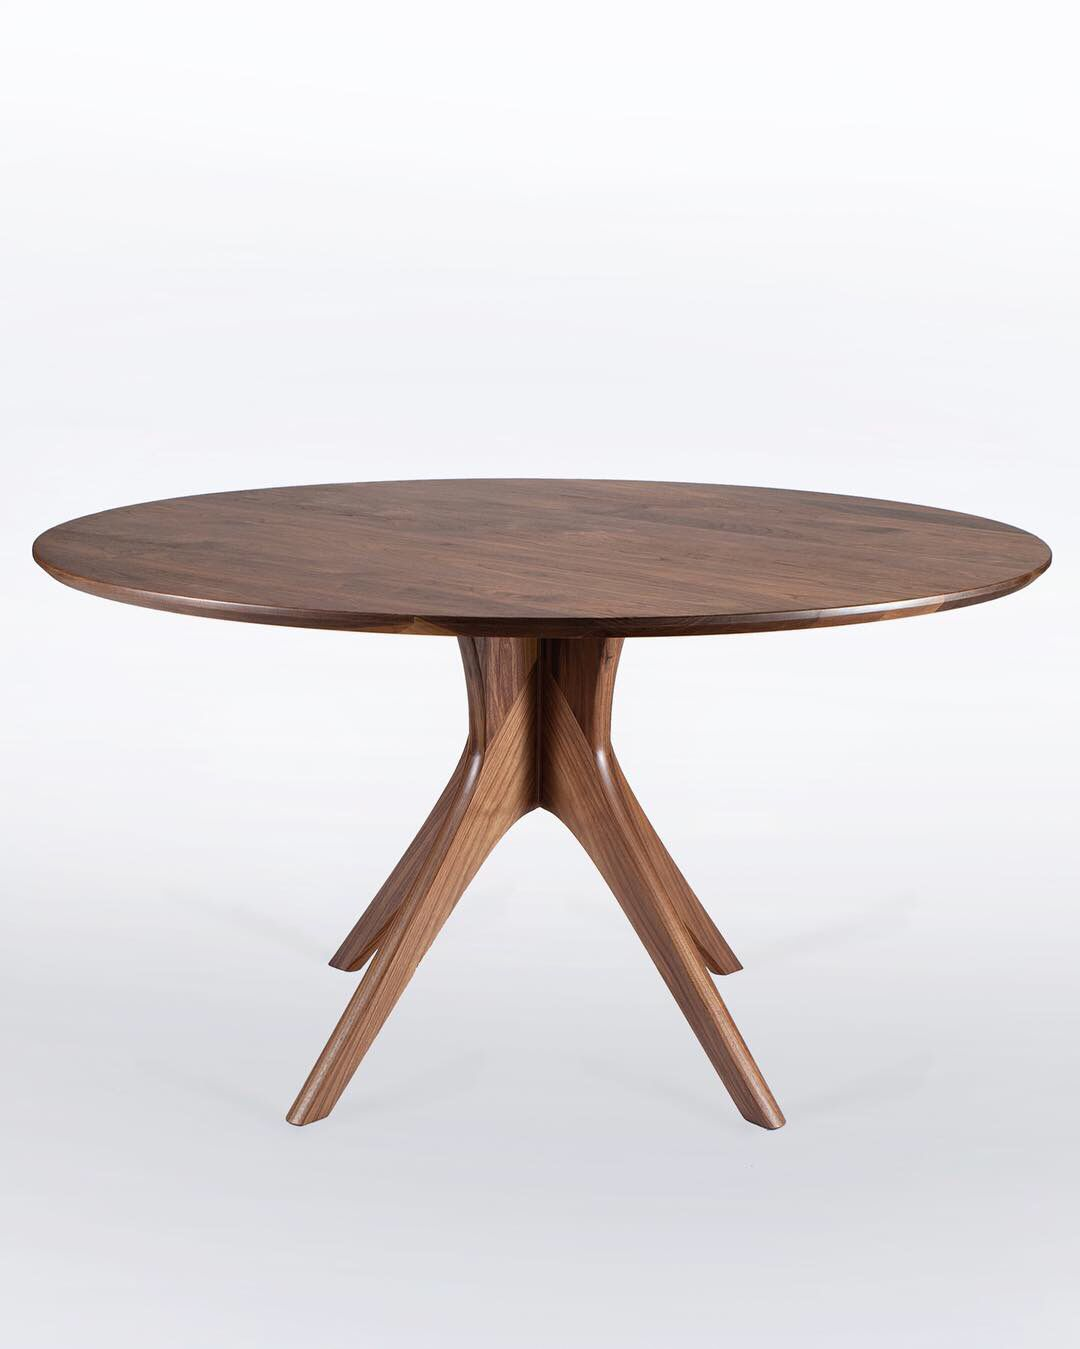 52 Diameter Walnut Dining Table By Nathan Hunter Design